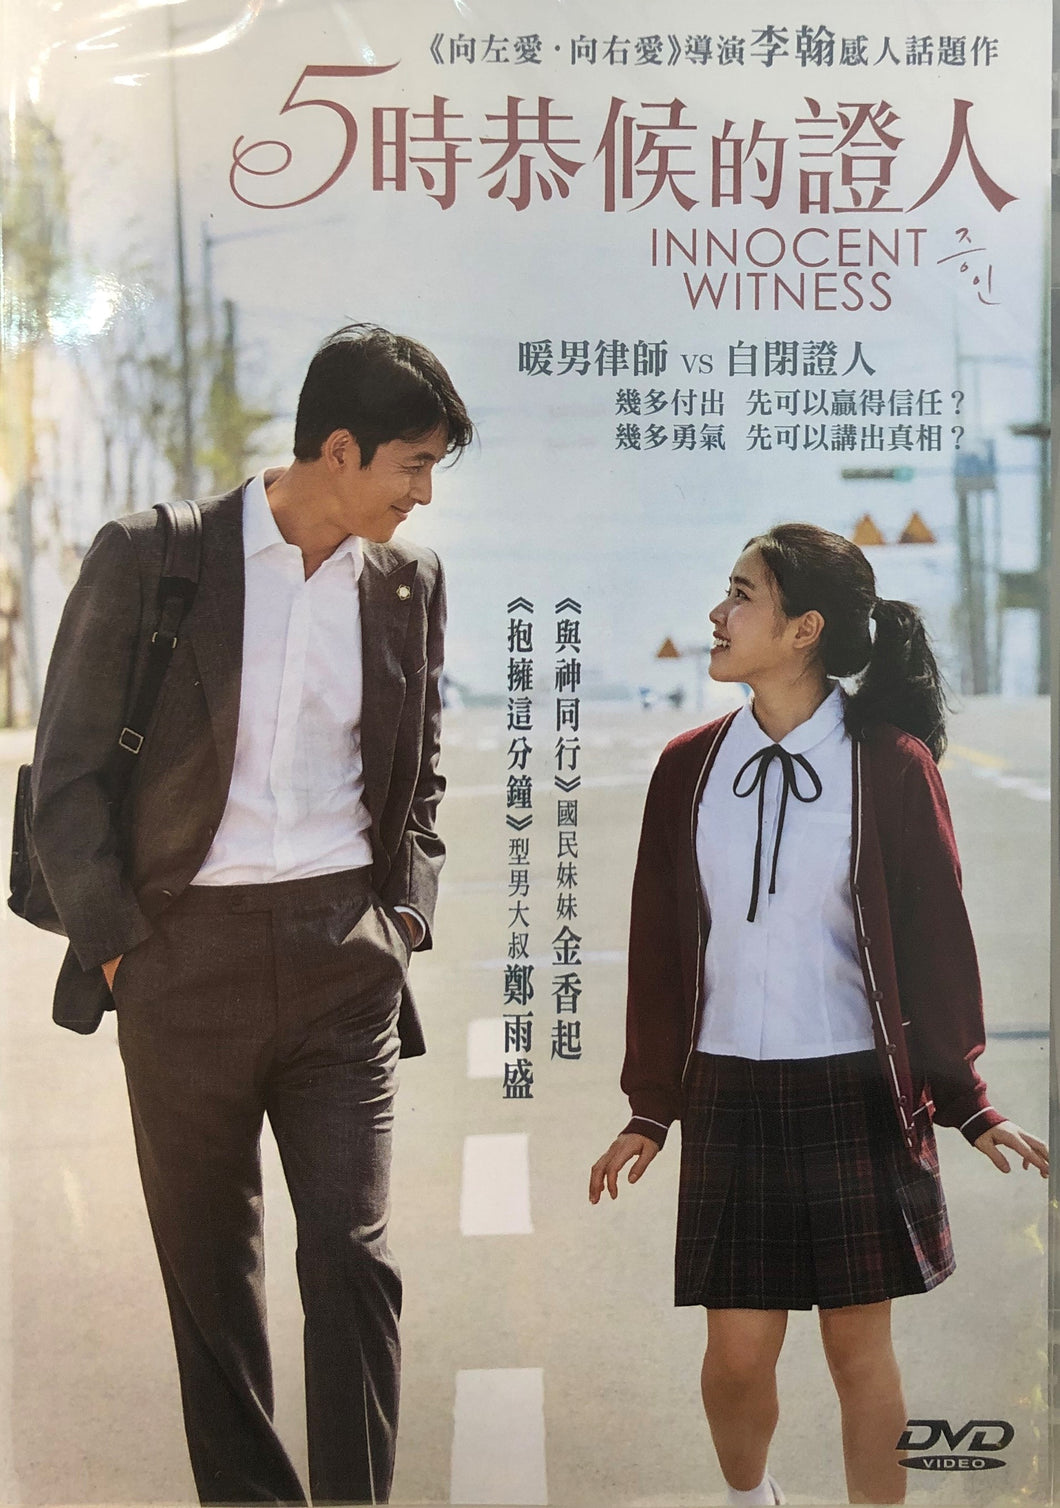 Innocent Witness 2019 (Korean Movie) DVD with English Subtitles (Region 3) 5時恭候的證人